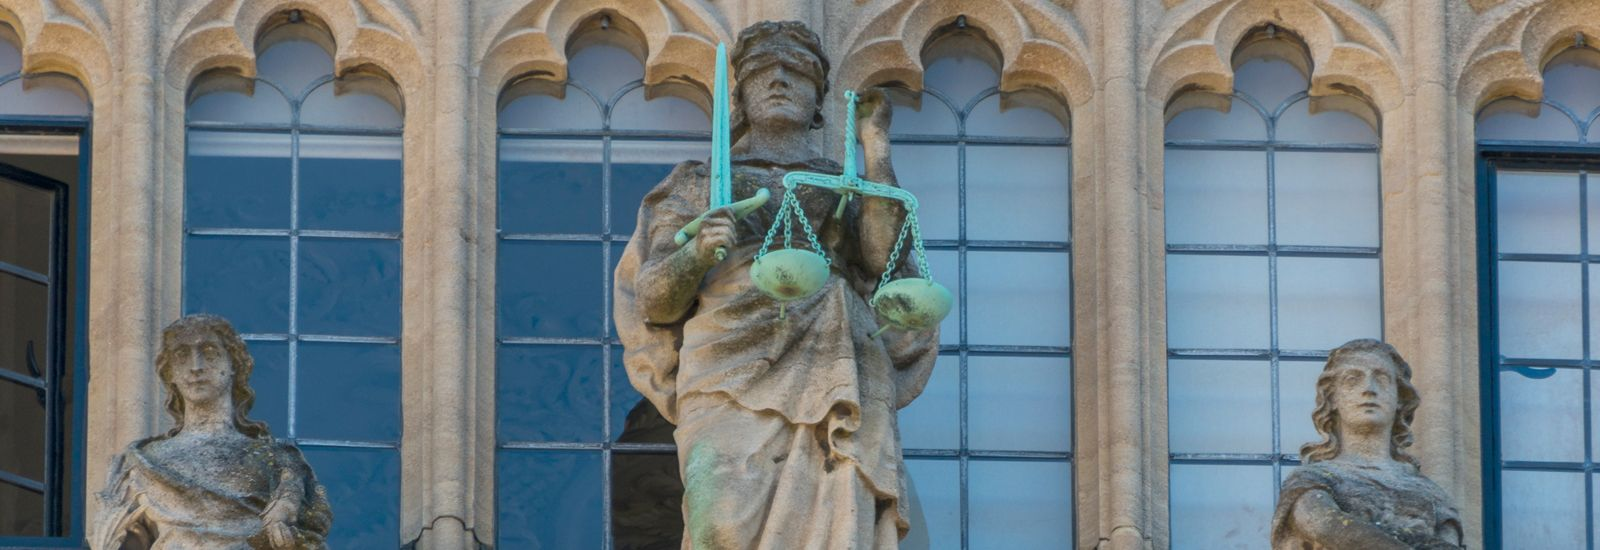 Justice with her scales and blindfold